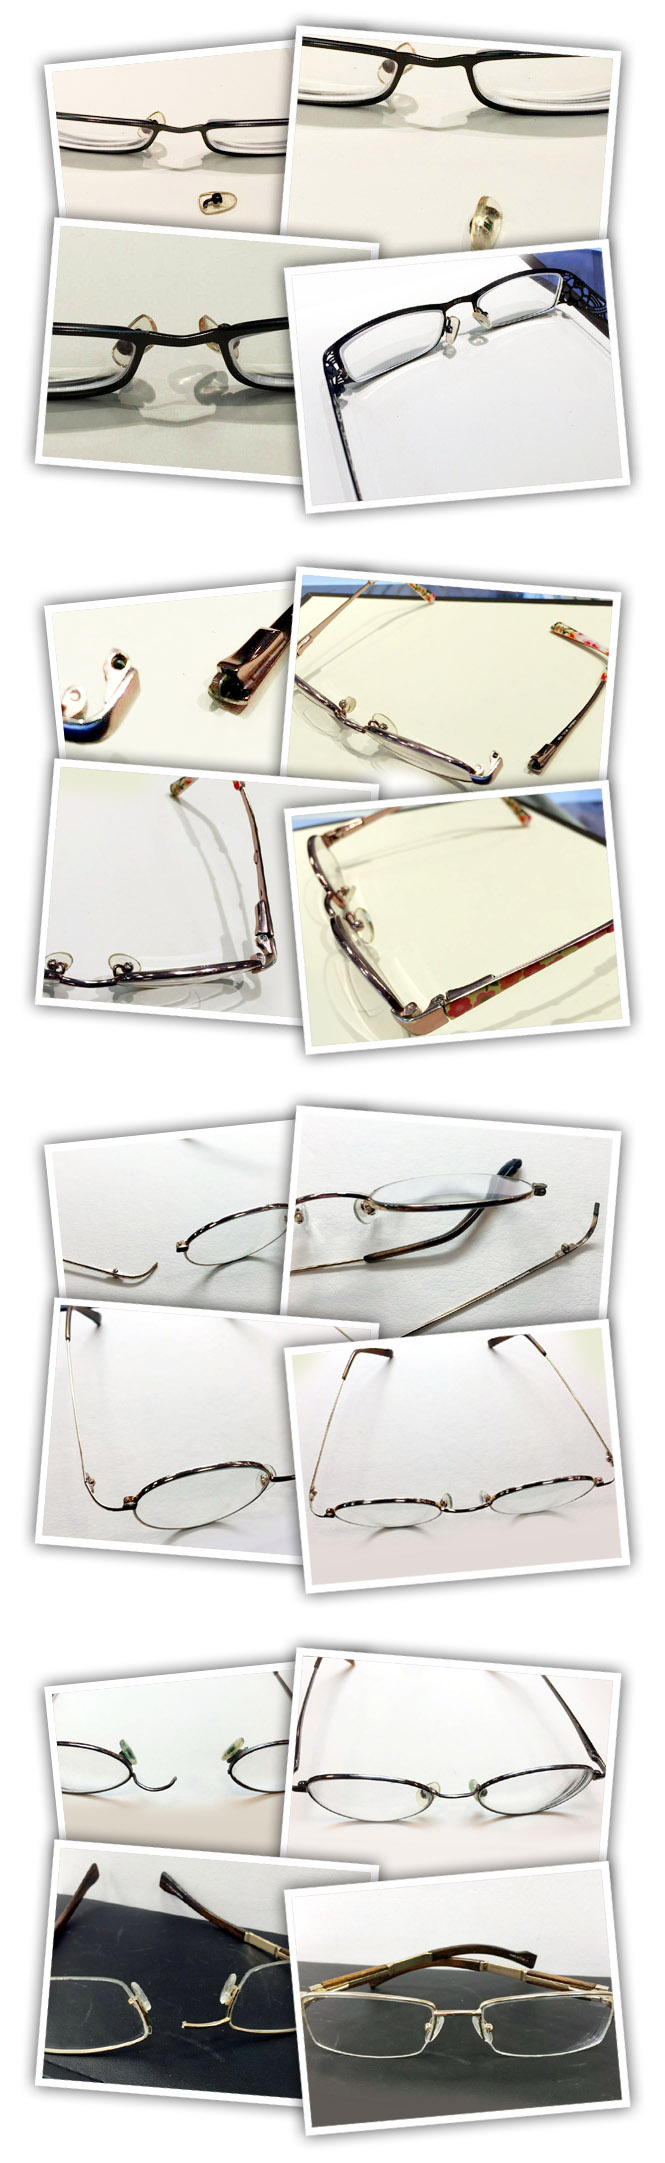 Eyeglass Repair Fairfax Va : Fairfax Eyeglass frame repair, Eyeglass frame repair in ...